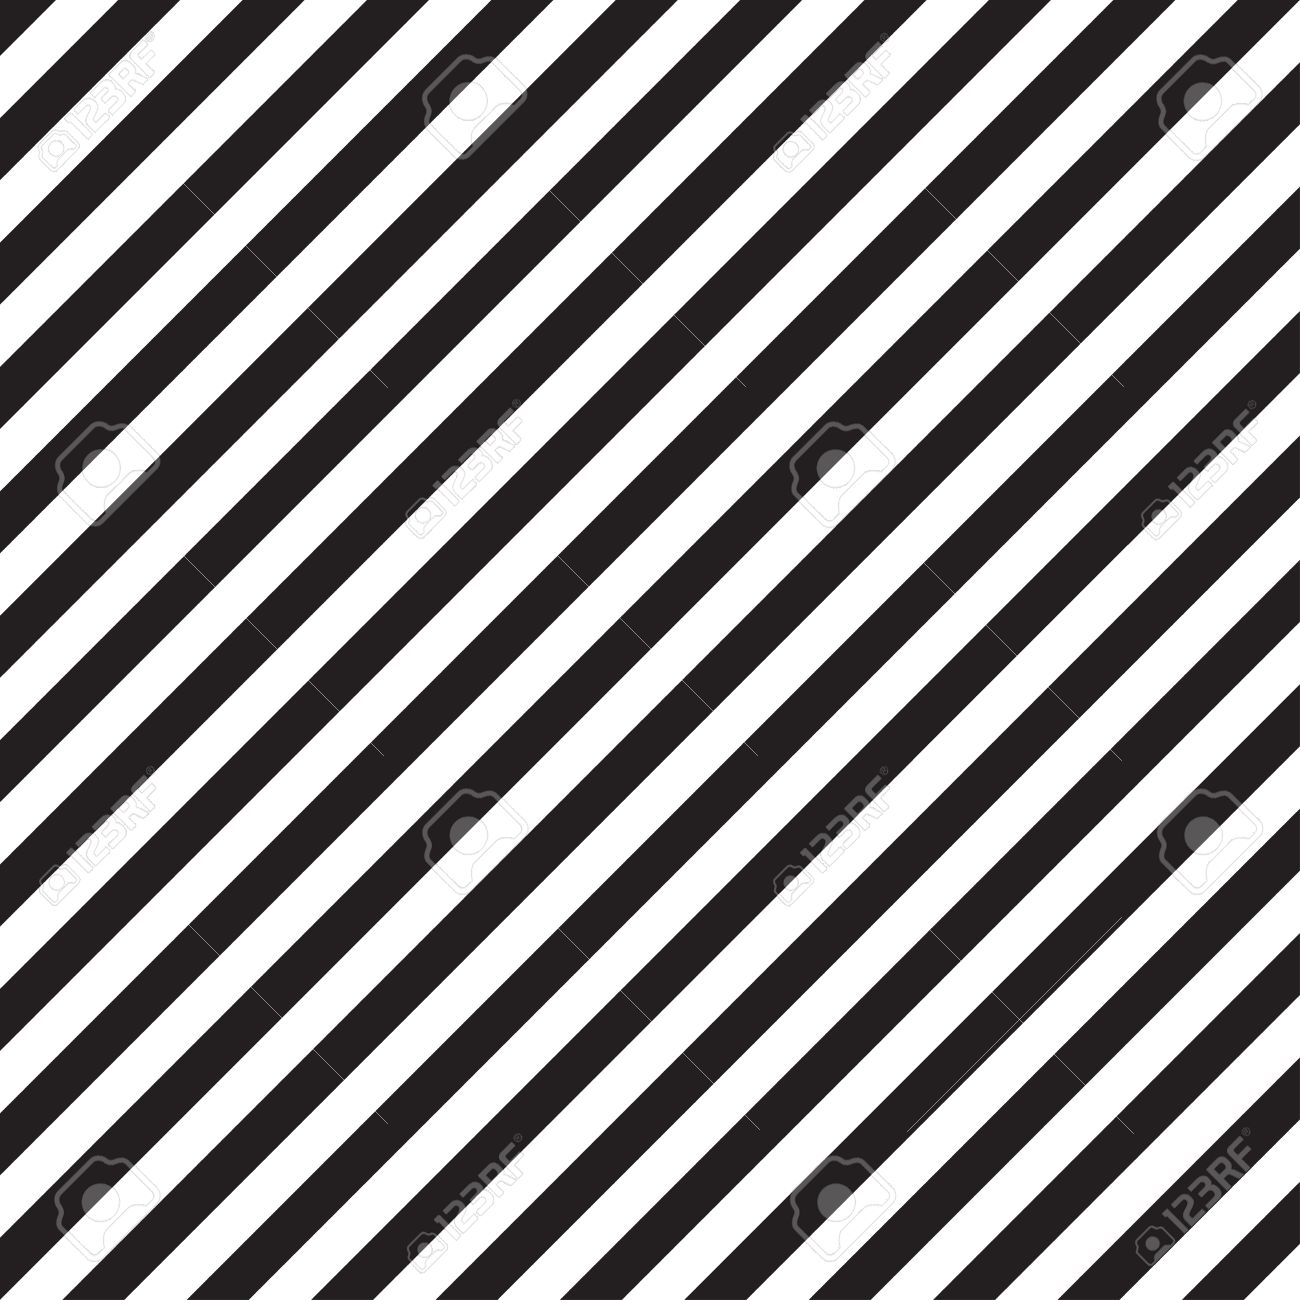 abstract geometric lines with diagonal black and white stripes